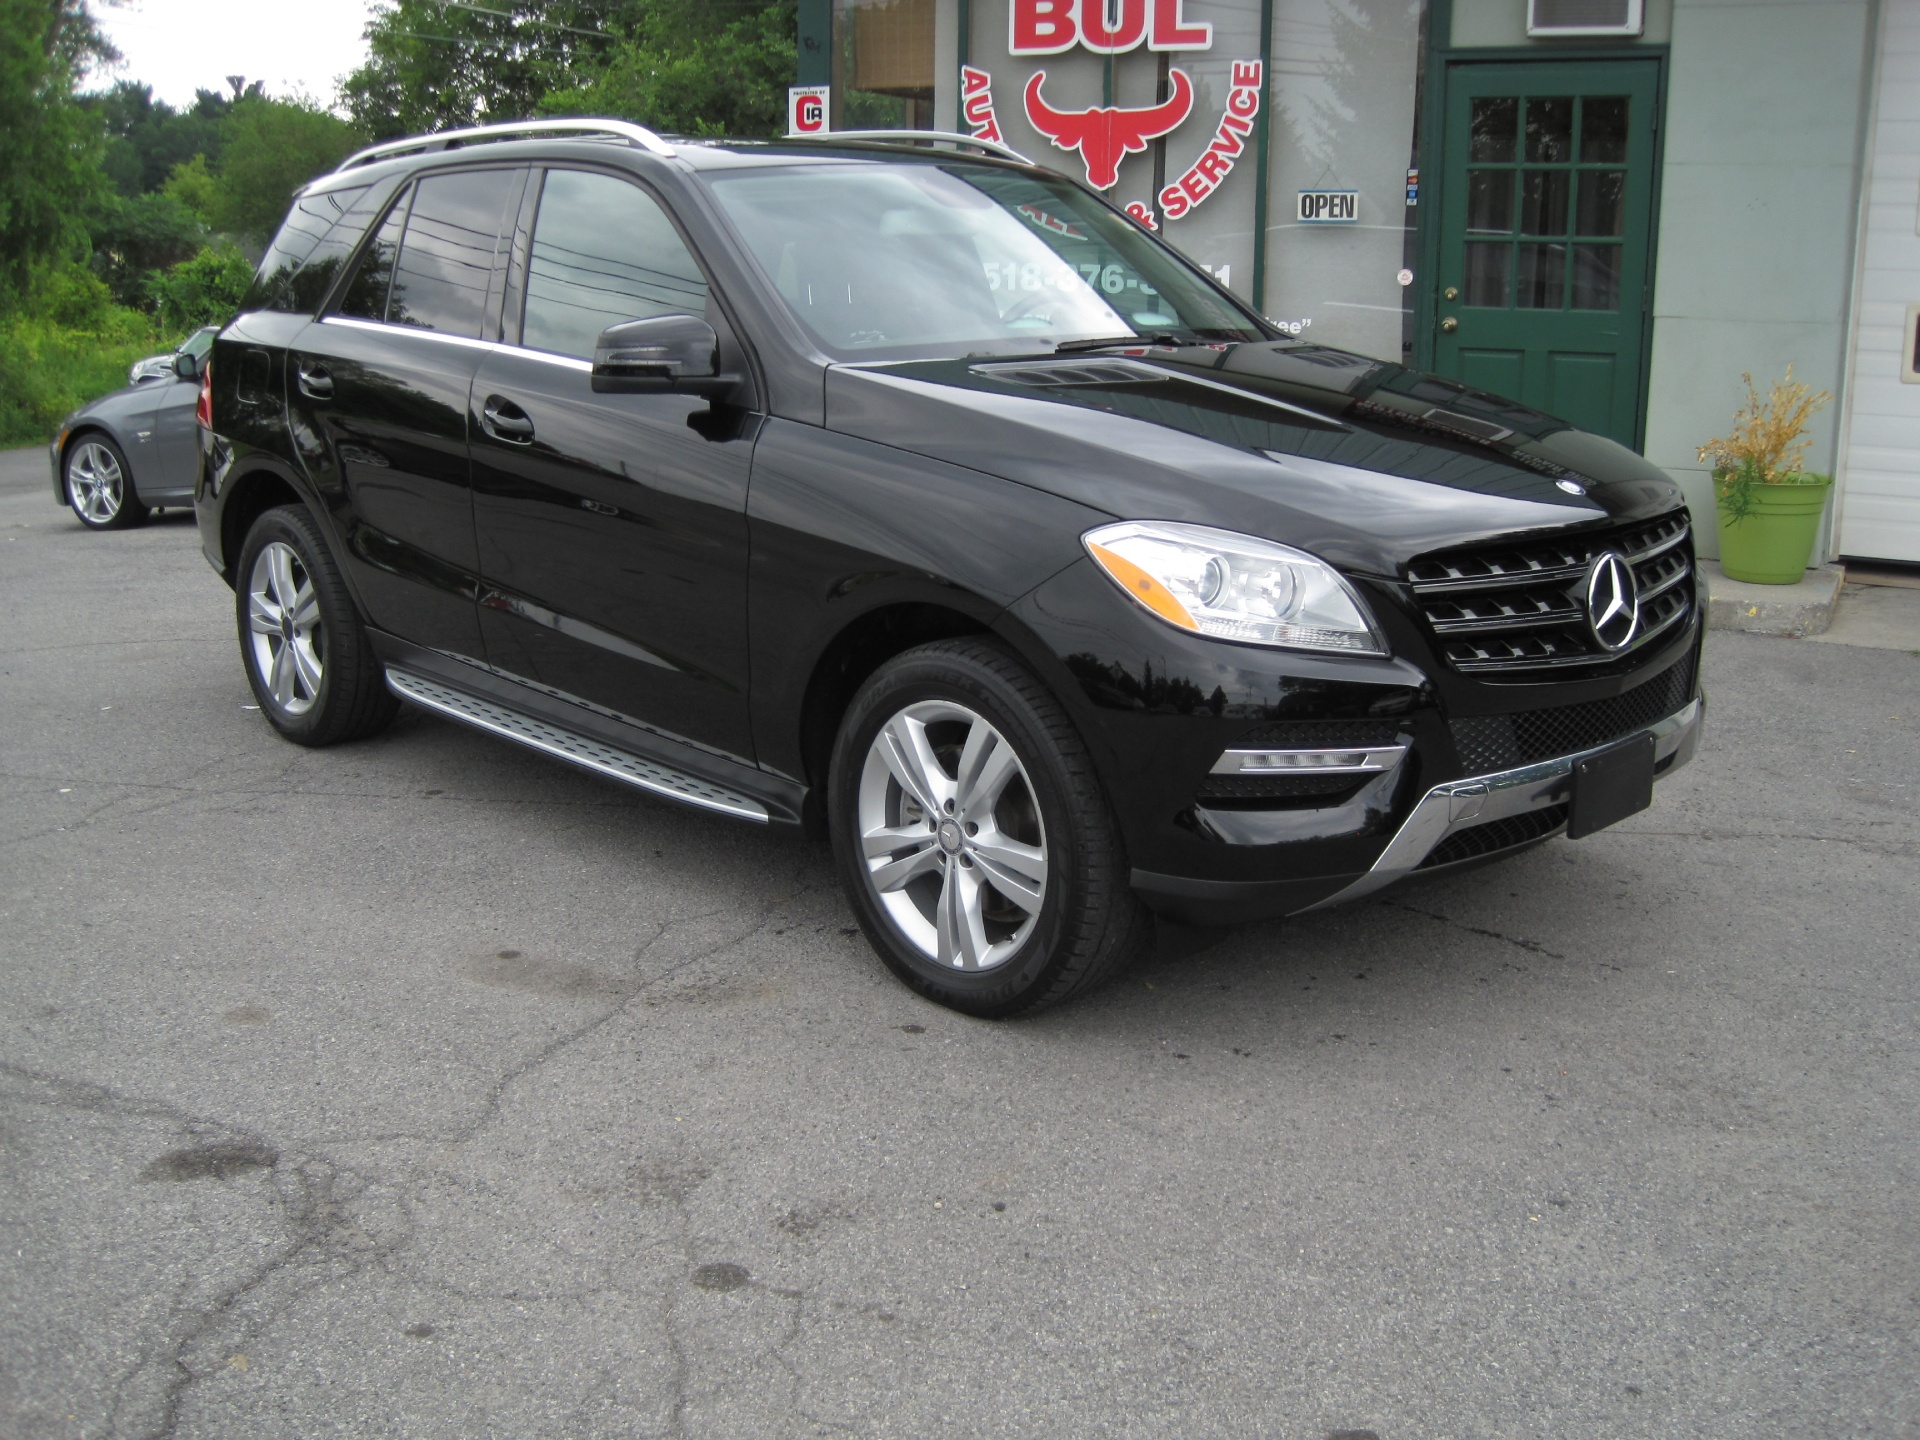 2013 mercedes benz m class ml350 4matic stock 15093 for for Mercedes benz albany ny